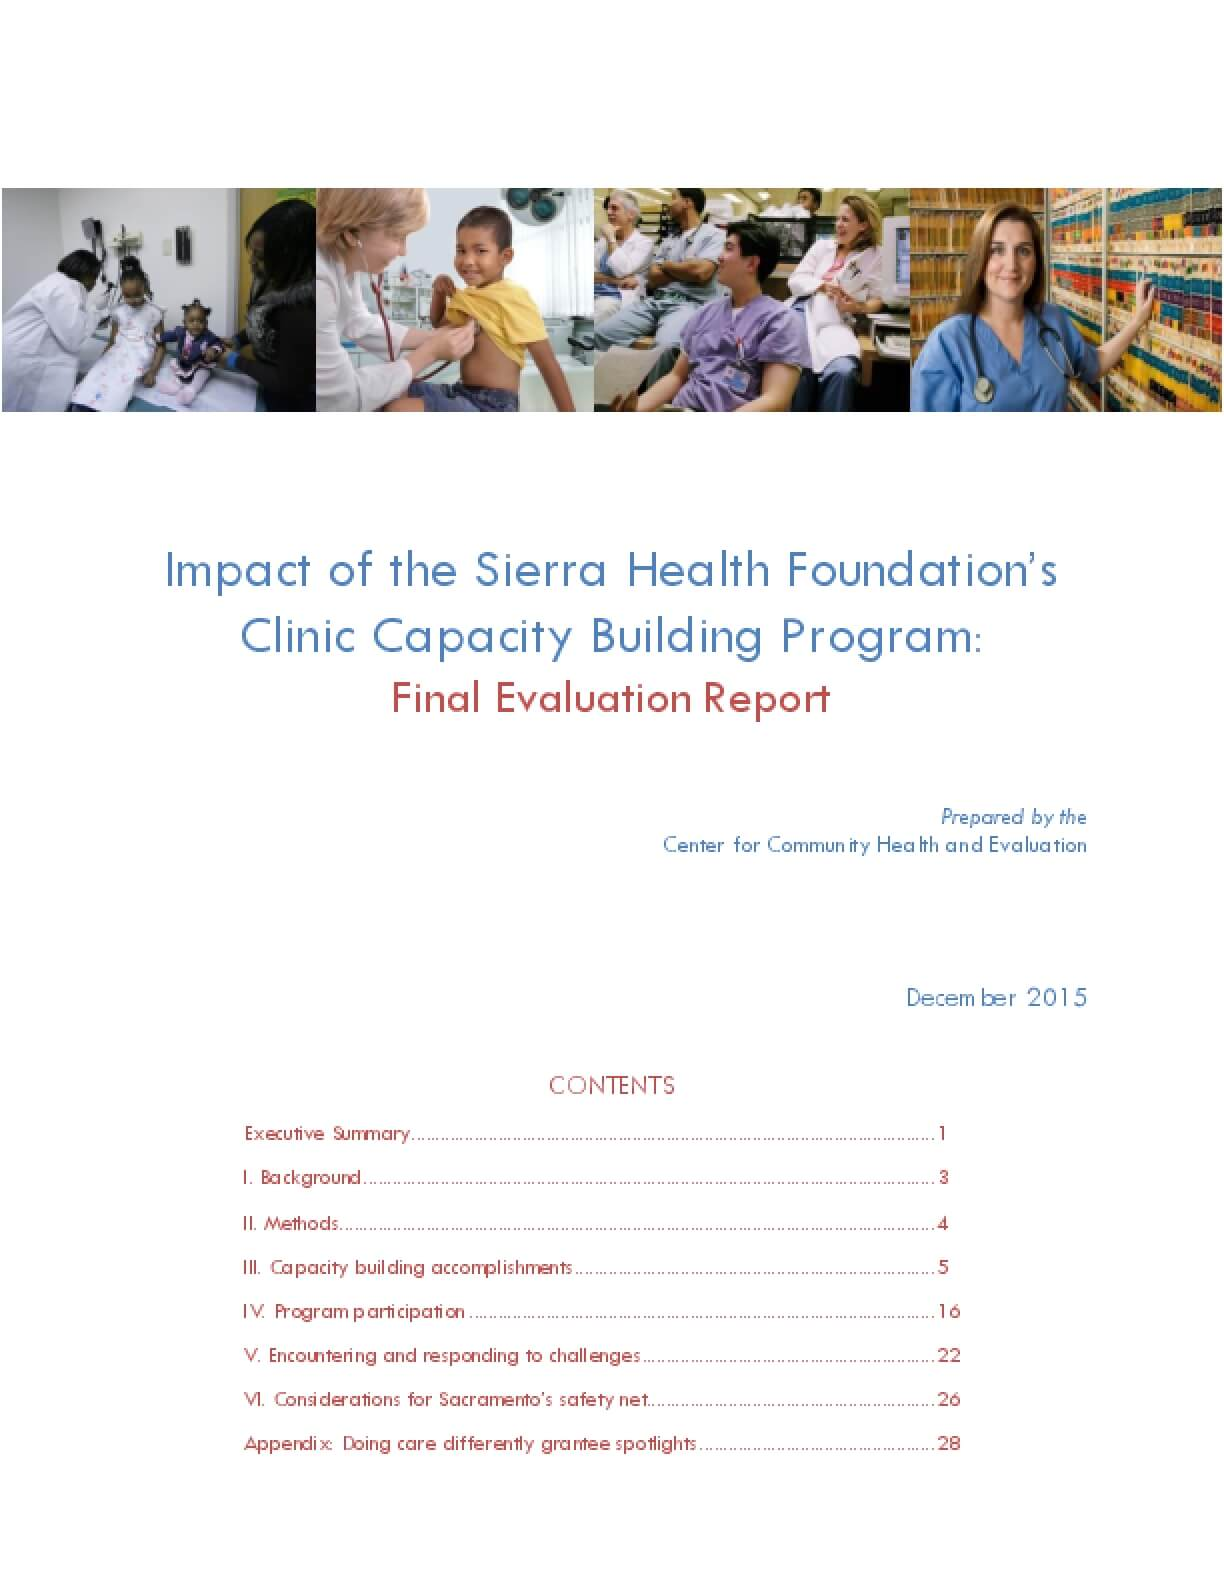 Impact of the Sierra Health Foundation's Clinic Capacity Building Program: Final Evaluation Report